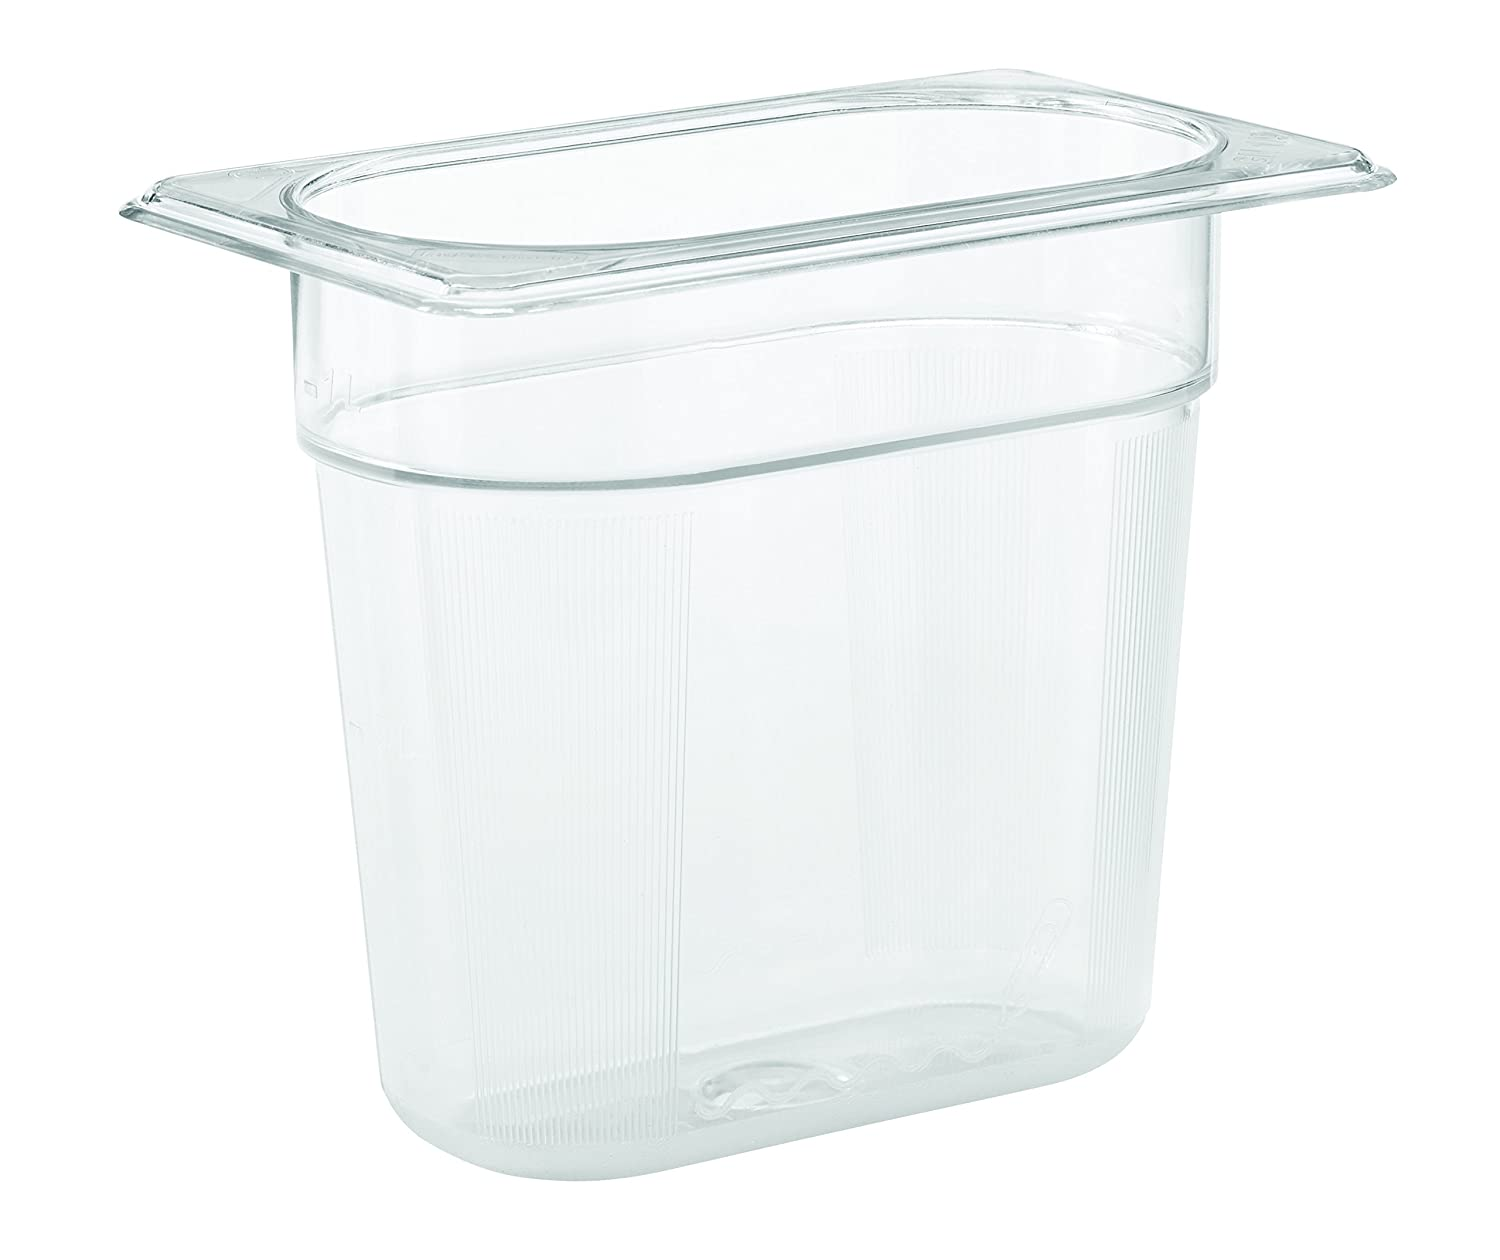 Rubbermaid Commercial Products 2045316 1/9 Size Insert Pan, 6